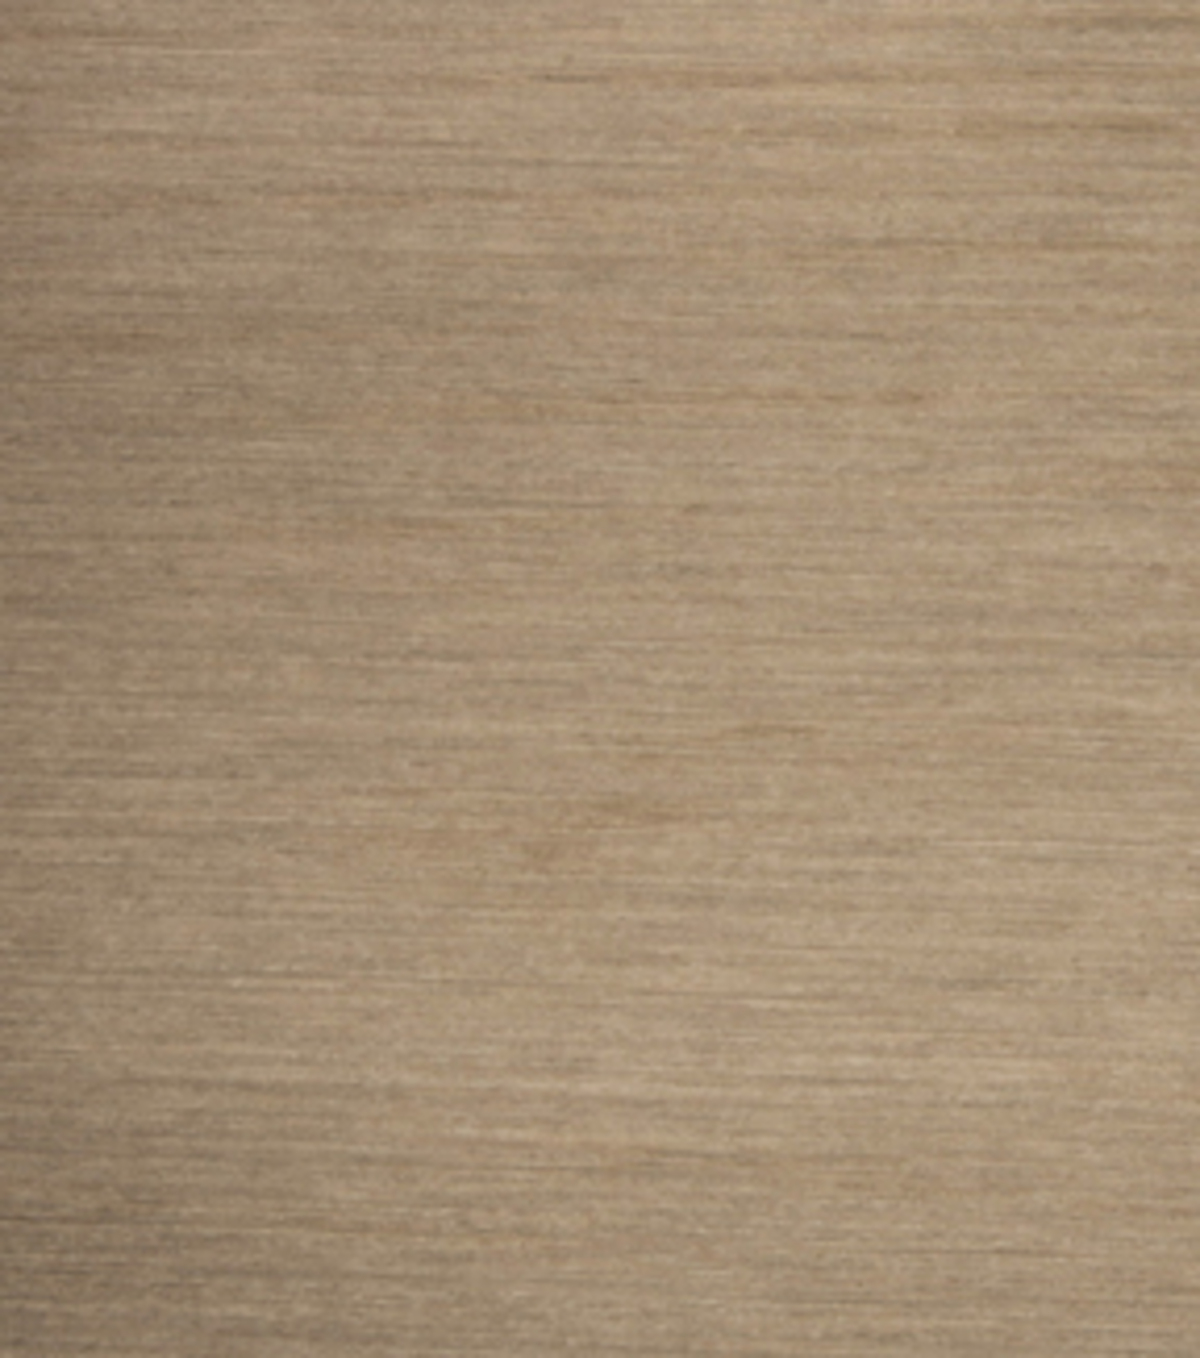 Home Decor 8\u0022x8\u0022 Fabric Swatch--Signature Series Shelburne-Flax